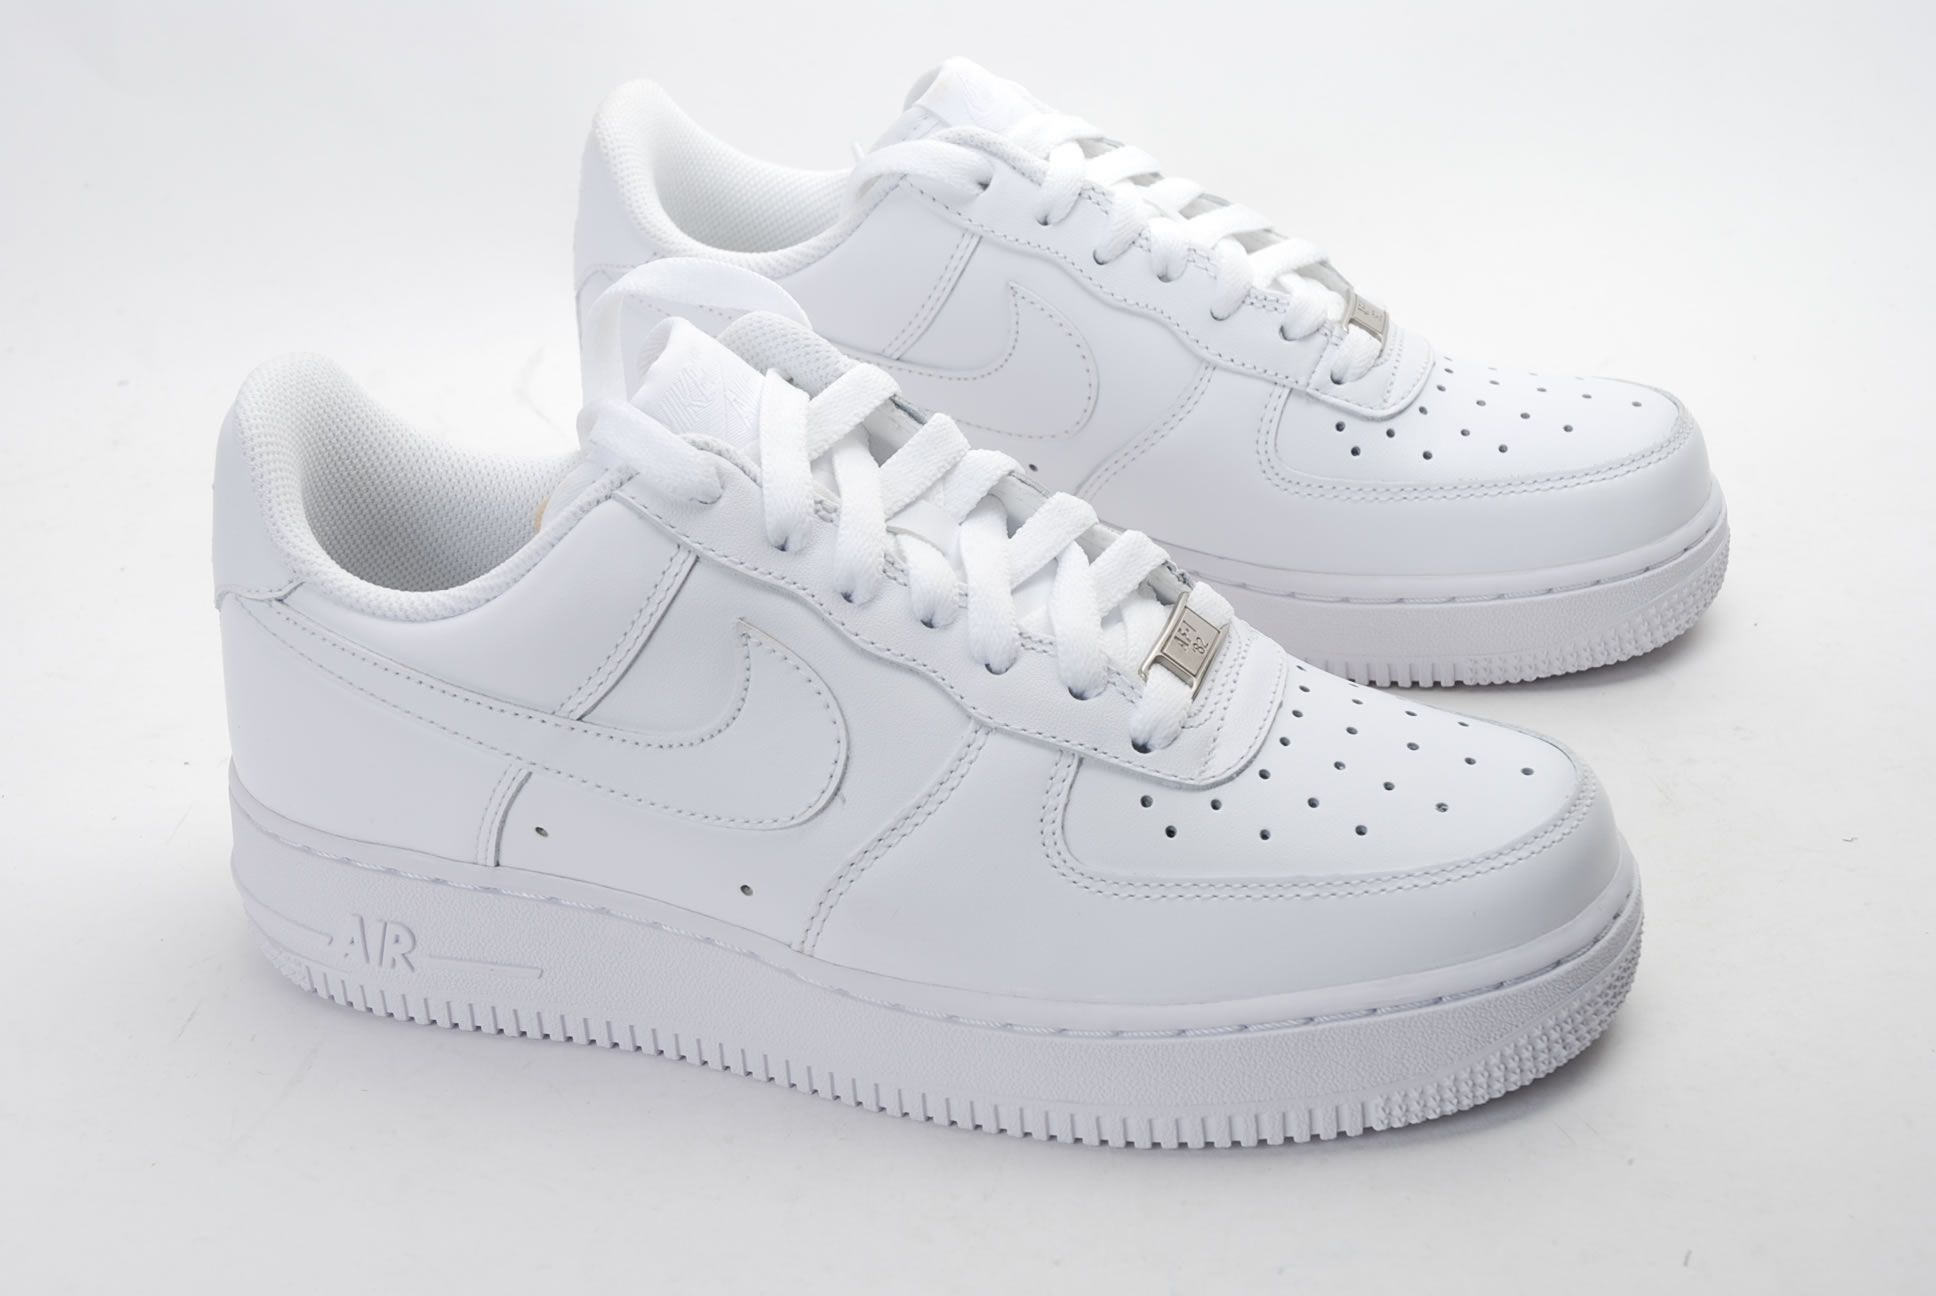 Air Force One White Adidas Shoes Women Nike Free Shoes Summer Shoes 2017